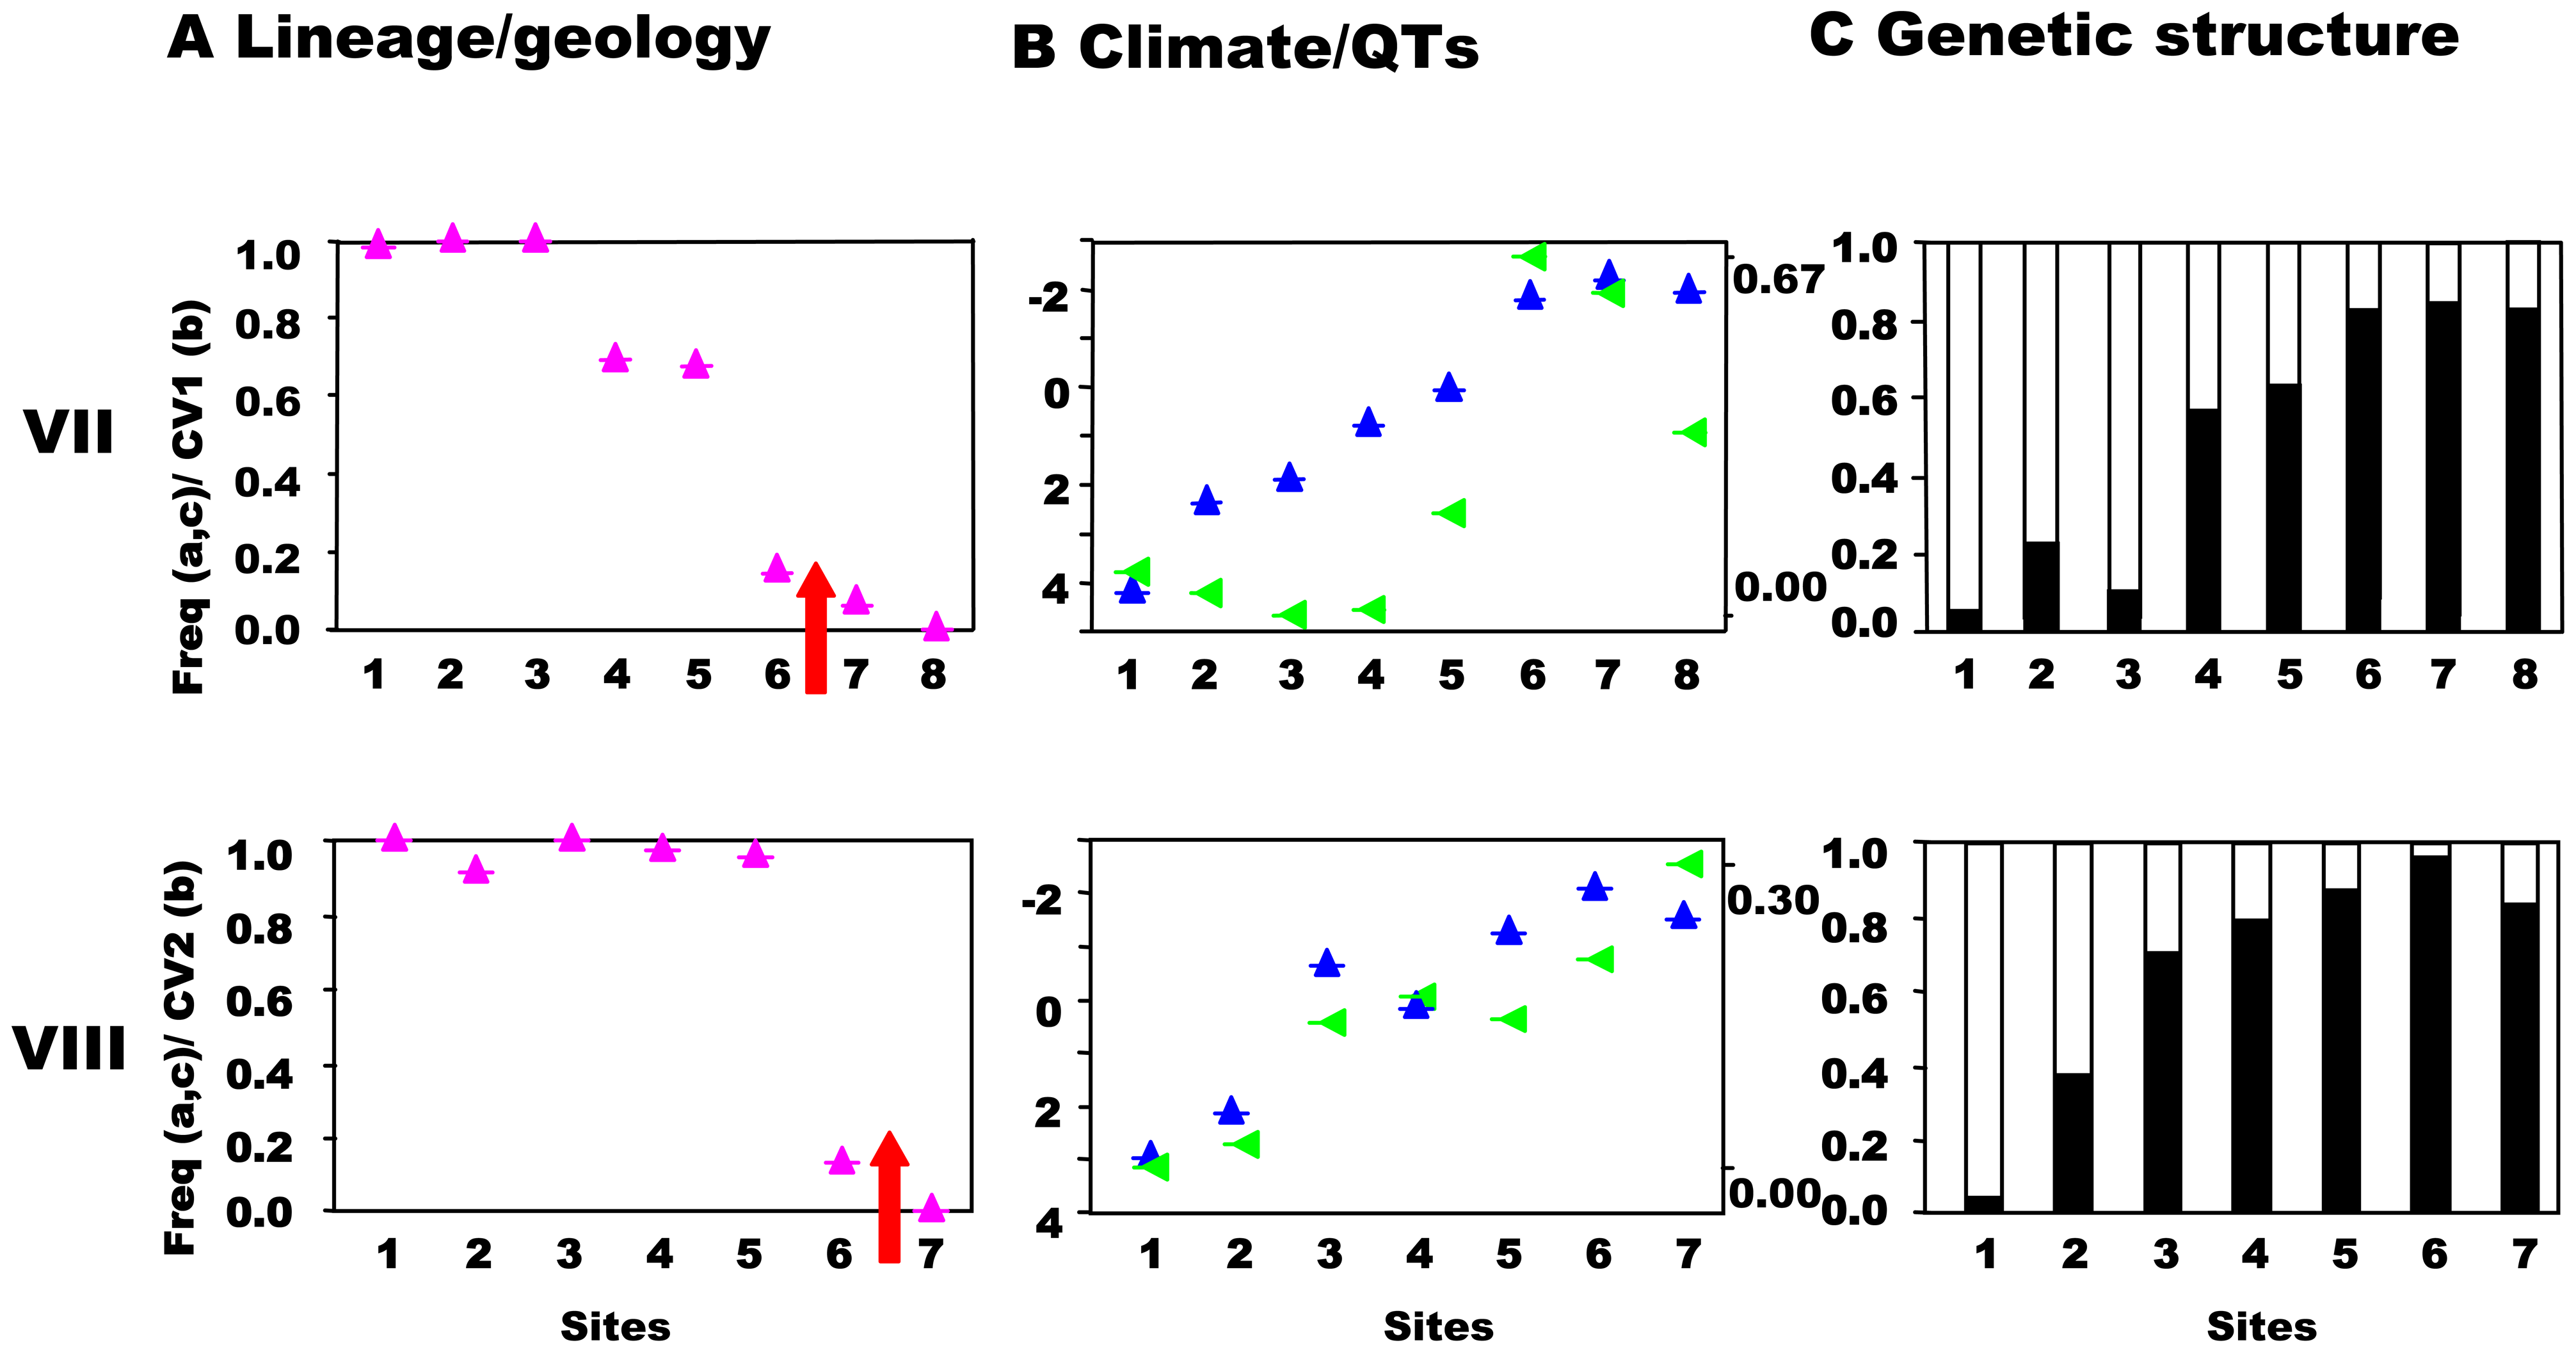 South-central precursor islands: lineages, quantitative traits, and genetic structure along transects.